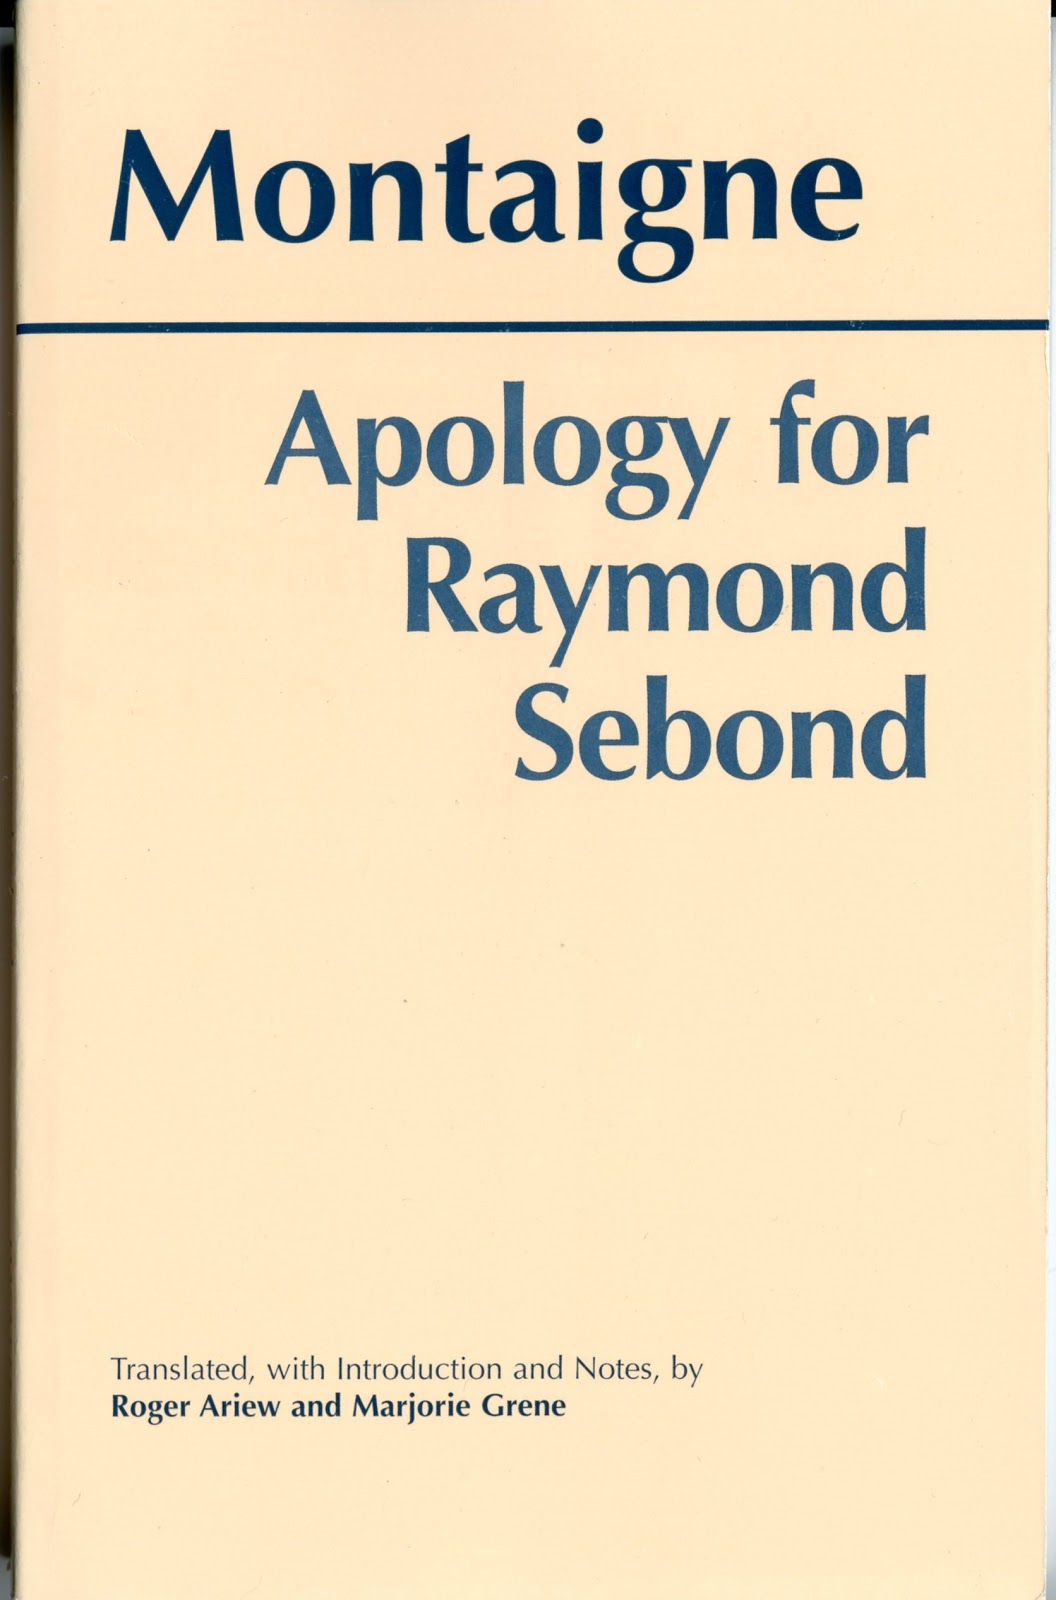 the th kind of madness montaigne s apology for raymond sebond